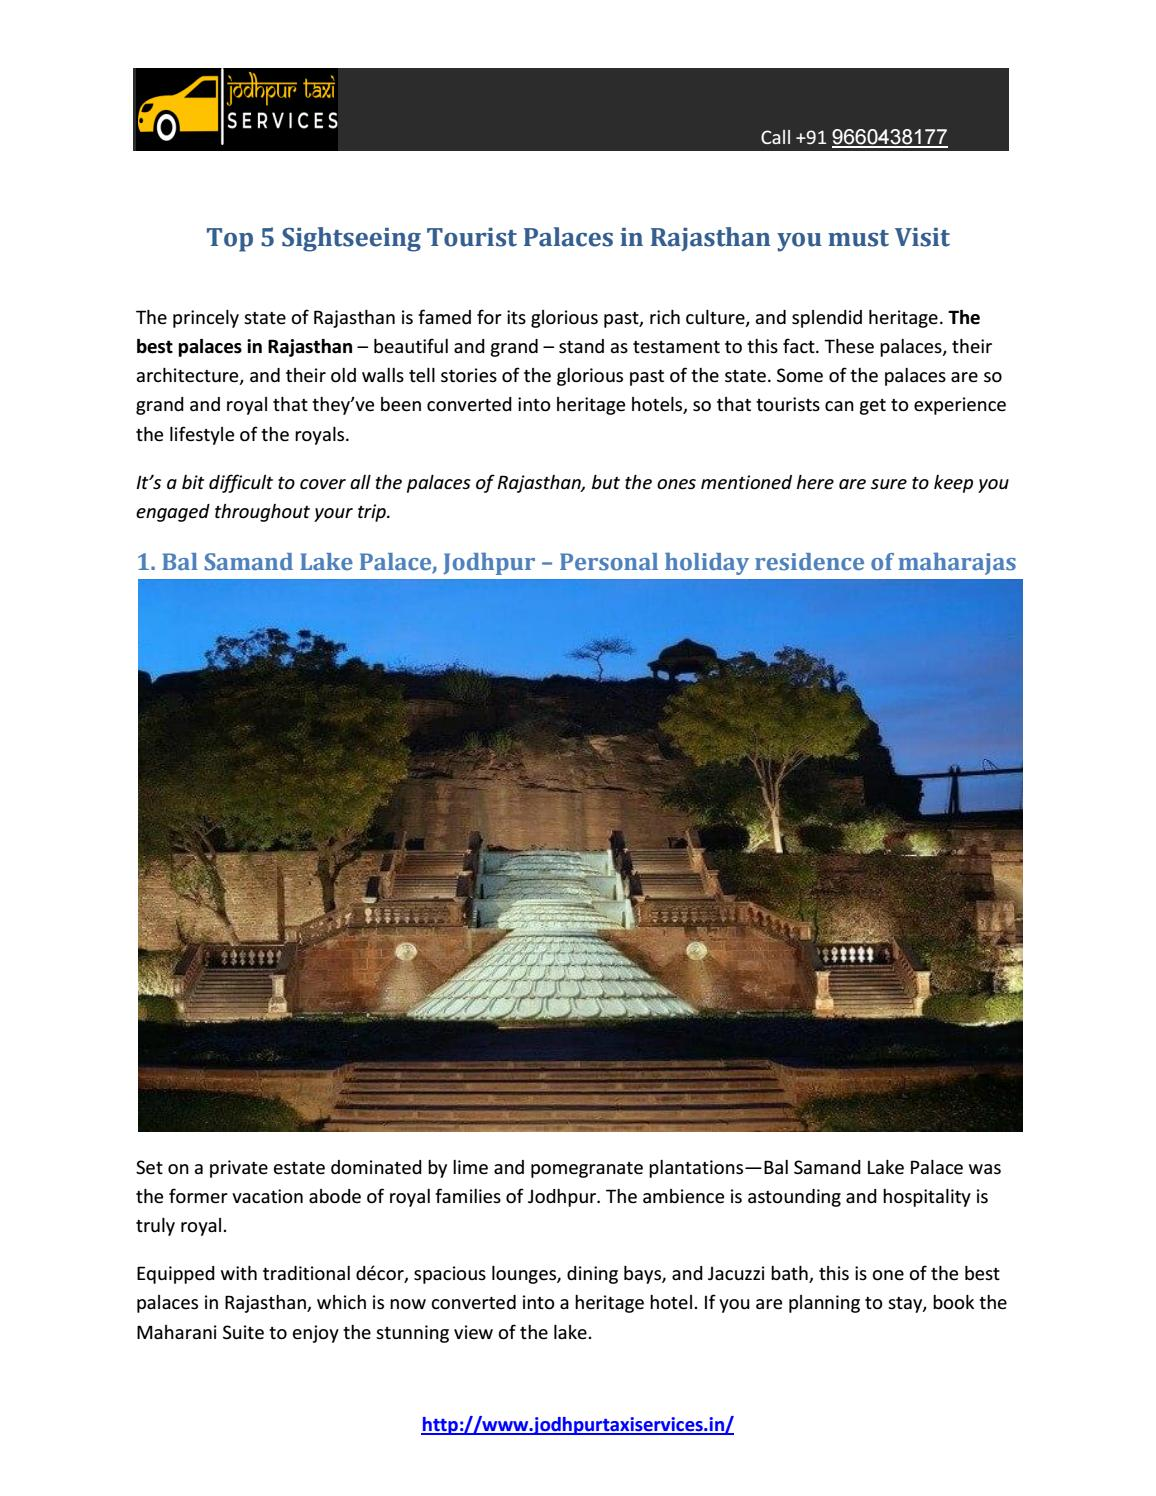 Top 5 Sightseeing Tourist Palaces in Rajasthan you must